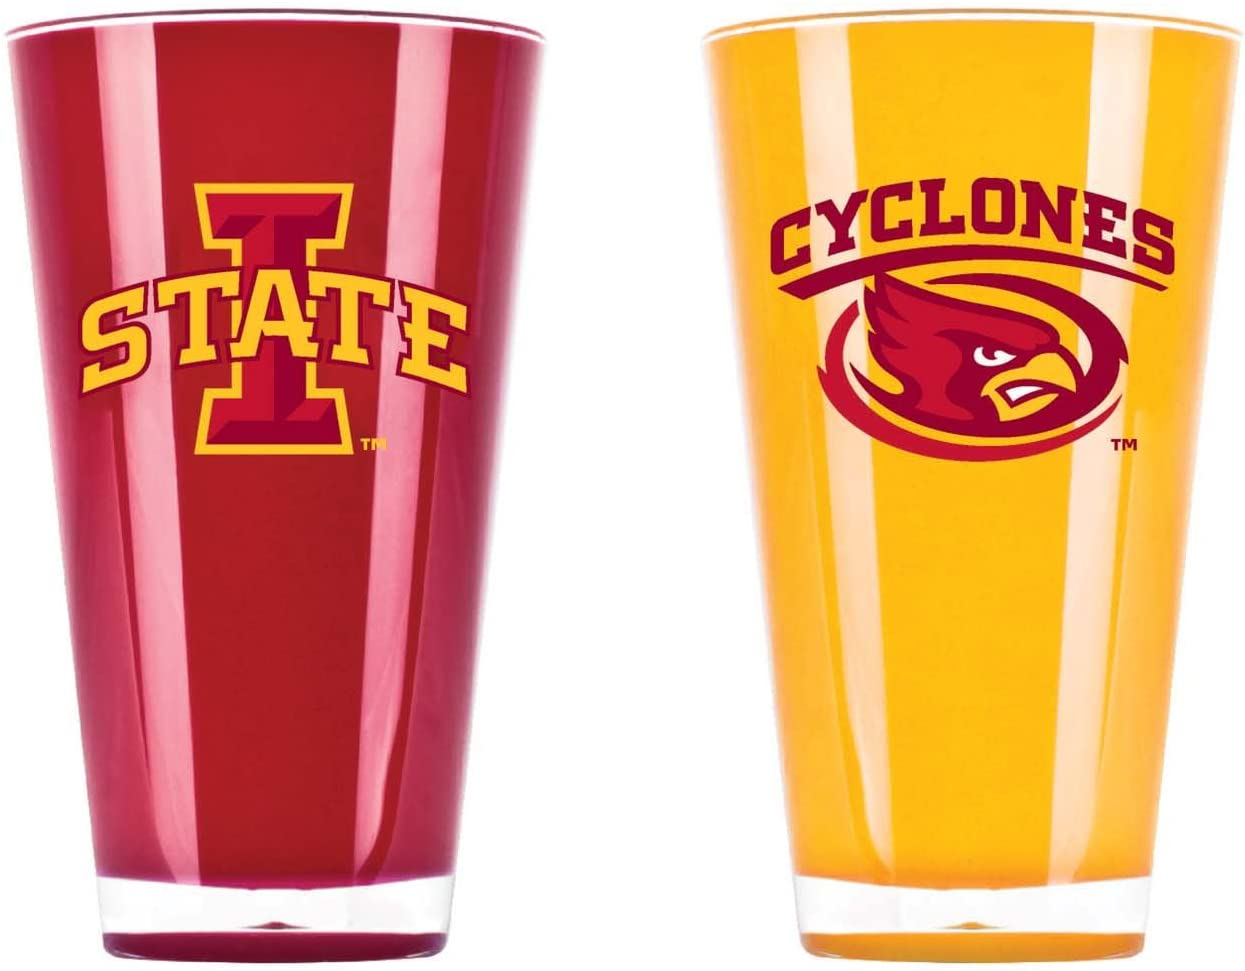 NCAA Iowa State Cyclones 20oz Insulated Acrylic Tumbler Set of 2